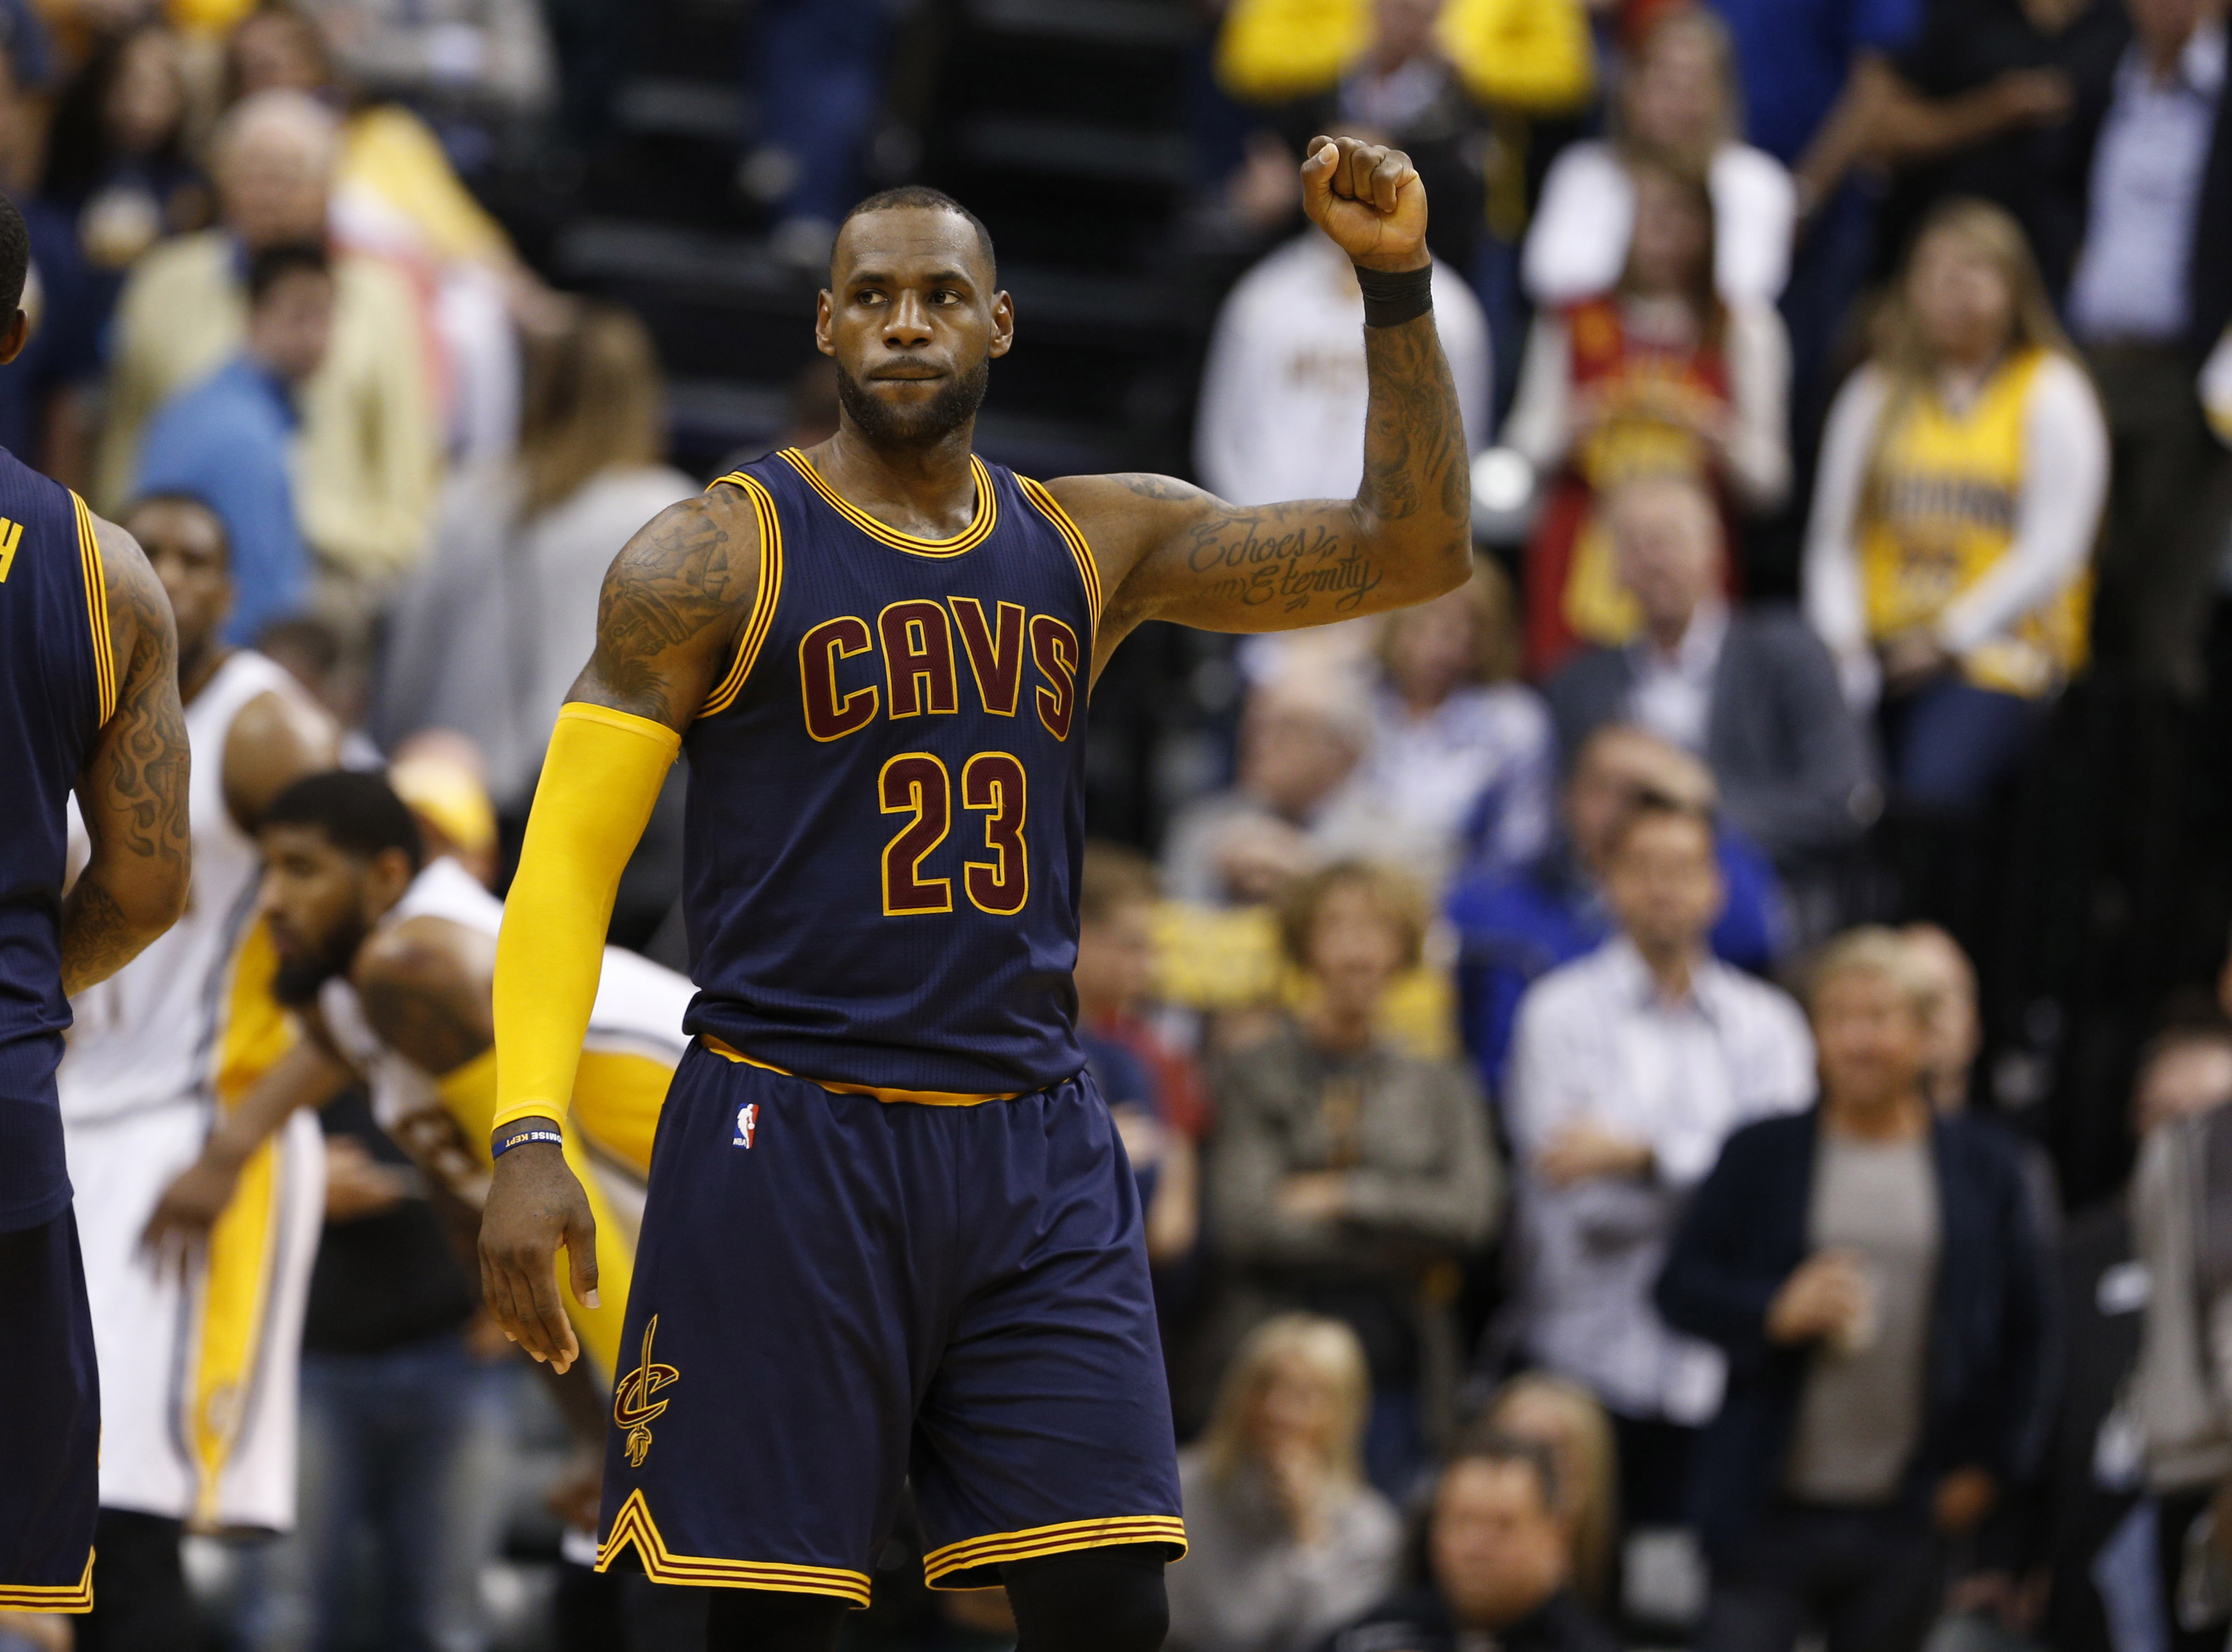 10027423-nba-playoffs-cleveland-cavaliers-at-indiana-pacers